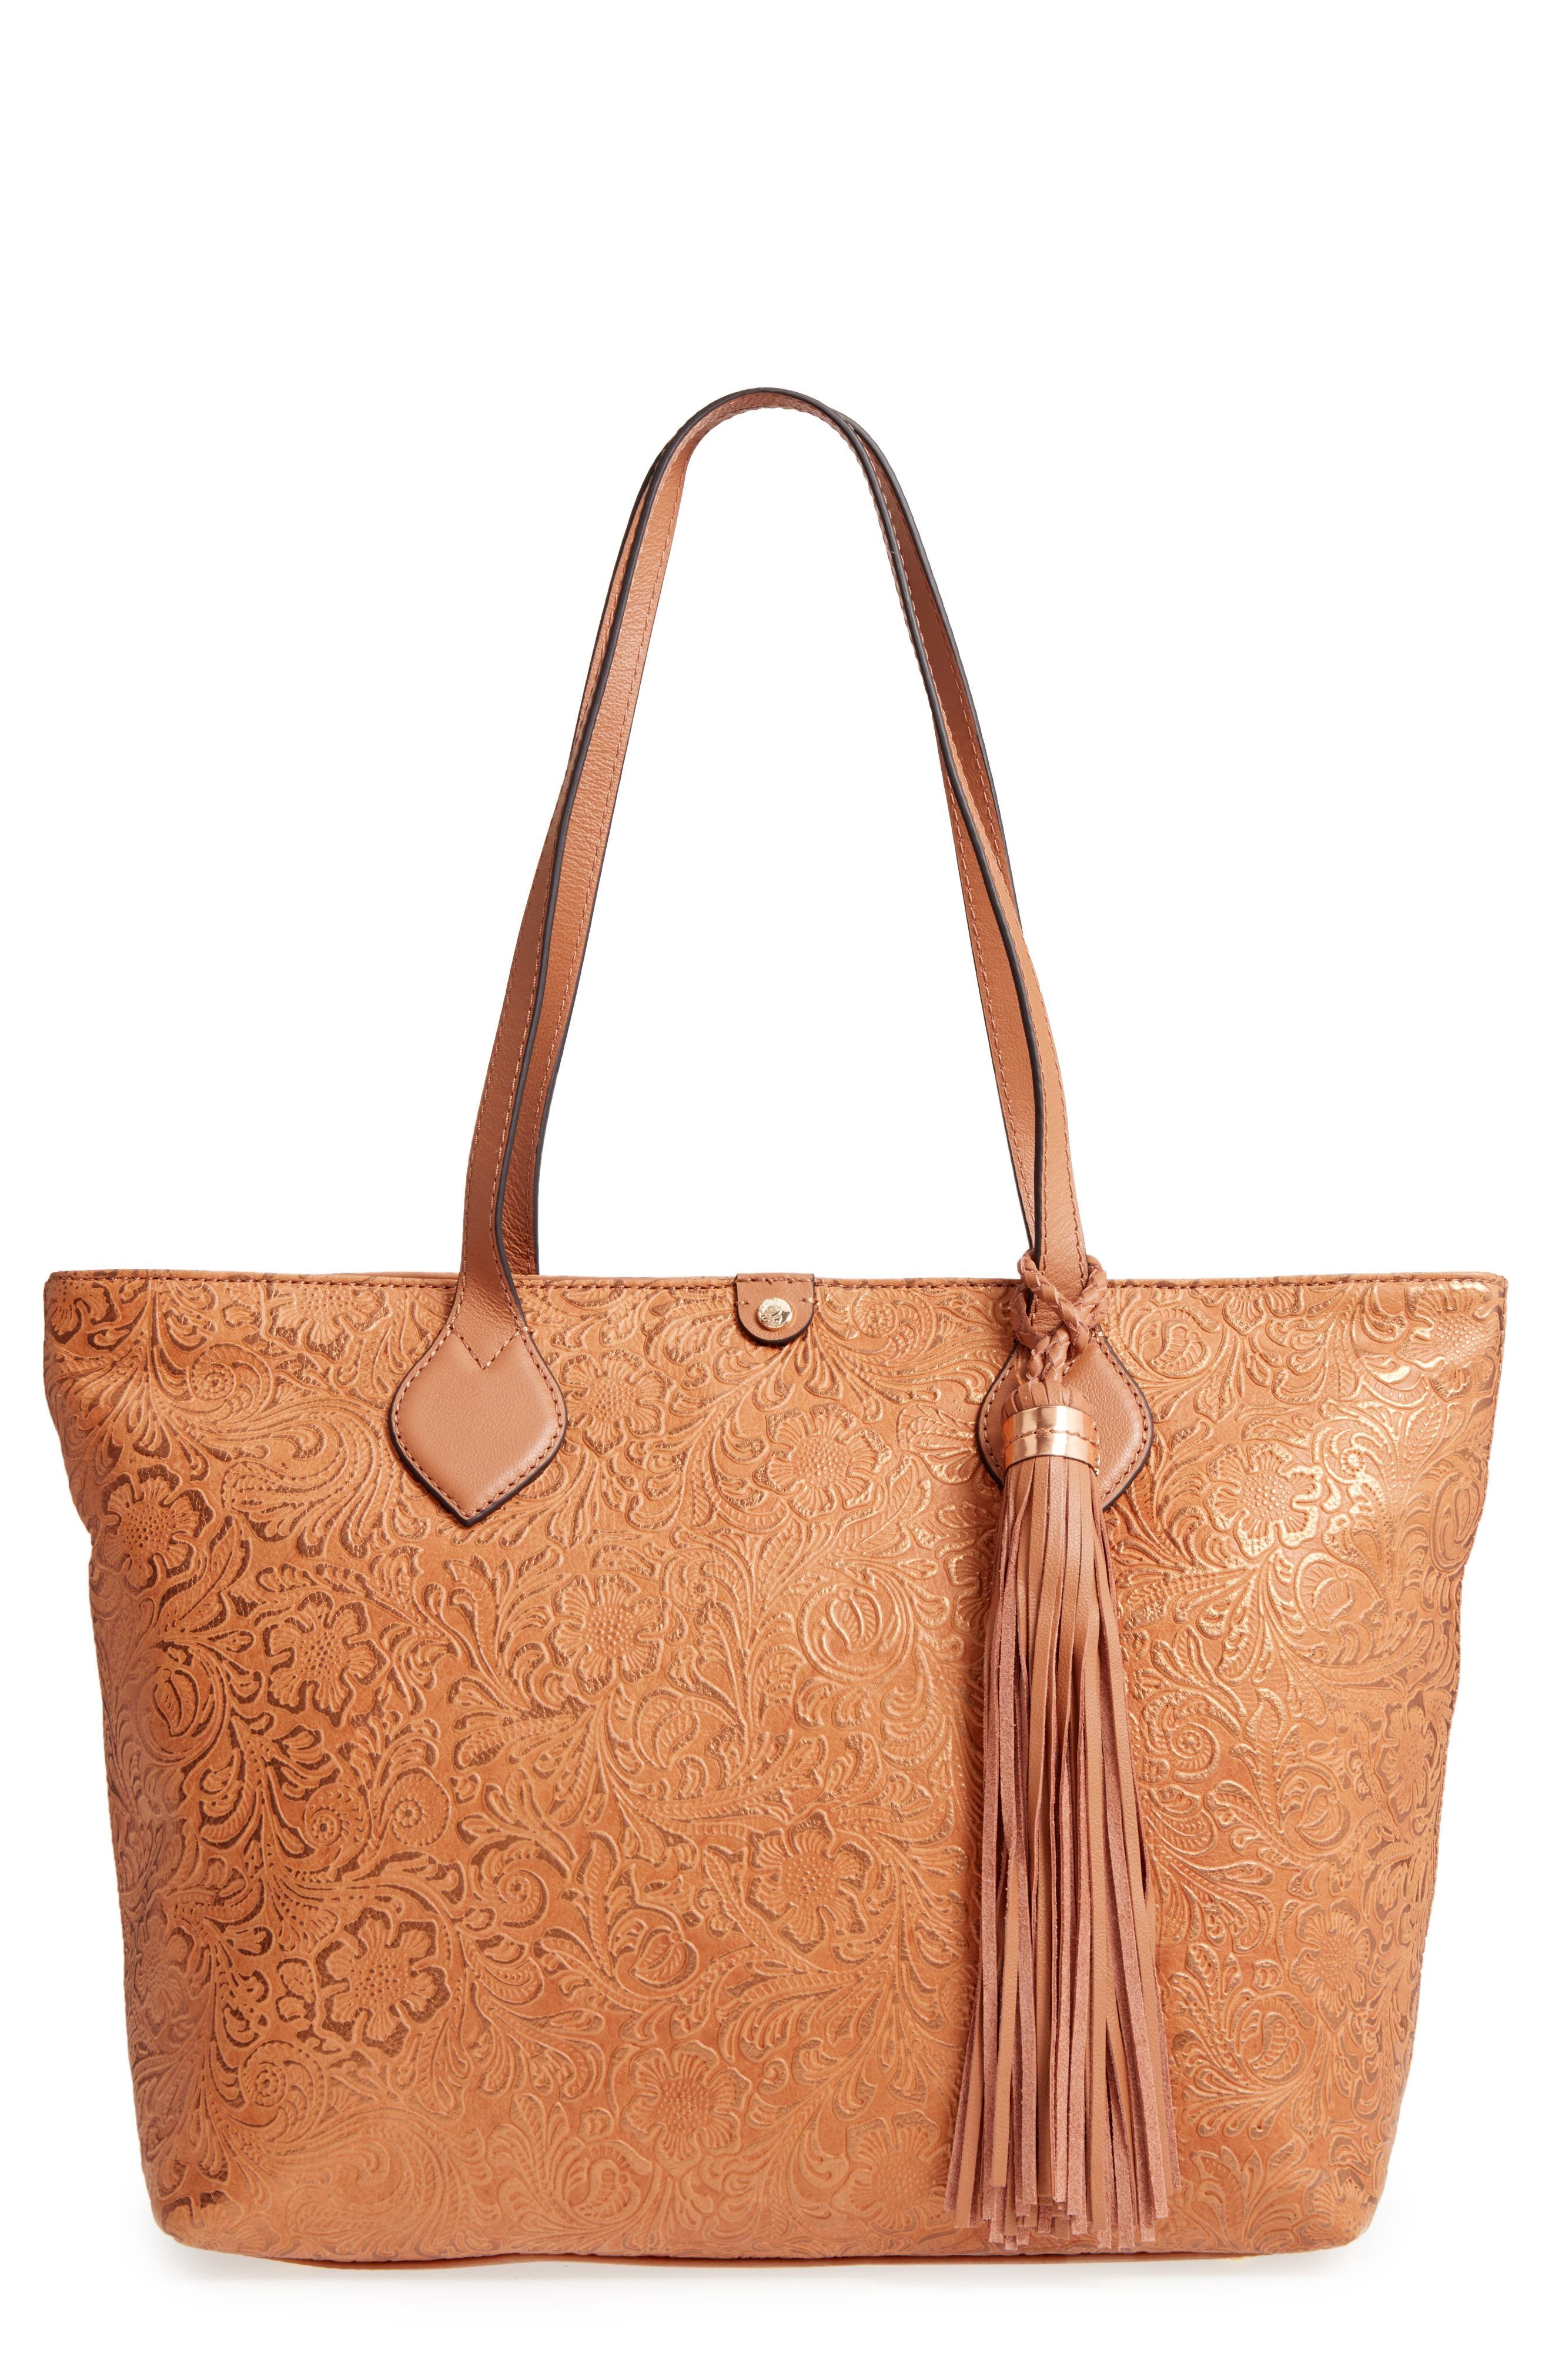 Alternate Image 1 Selected - Tommy Bahama Barbados Leather Tote